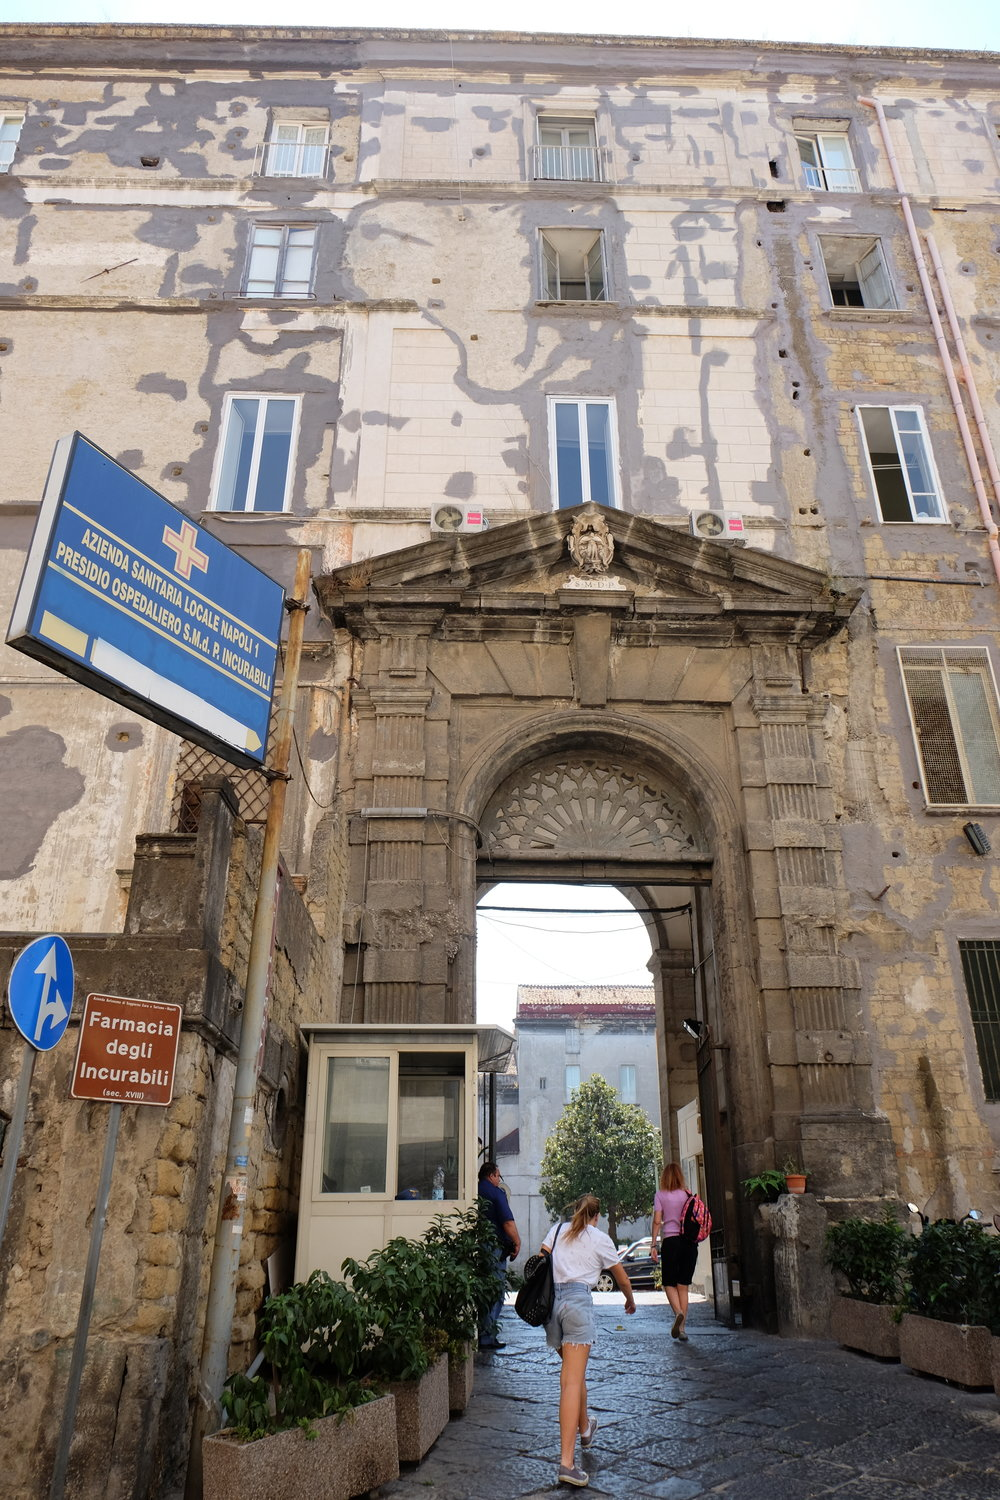 Entrance to the Incurabili hospital courtyard, where the pharmacy is located.